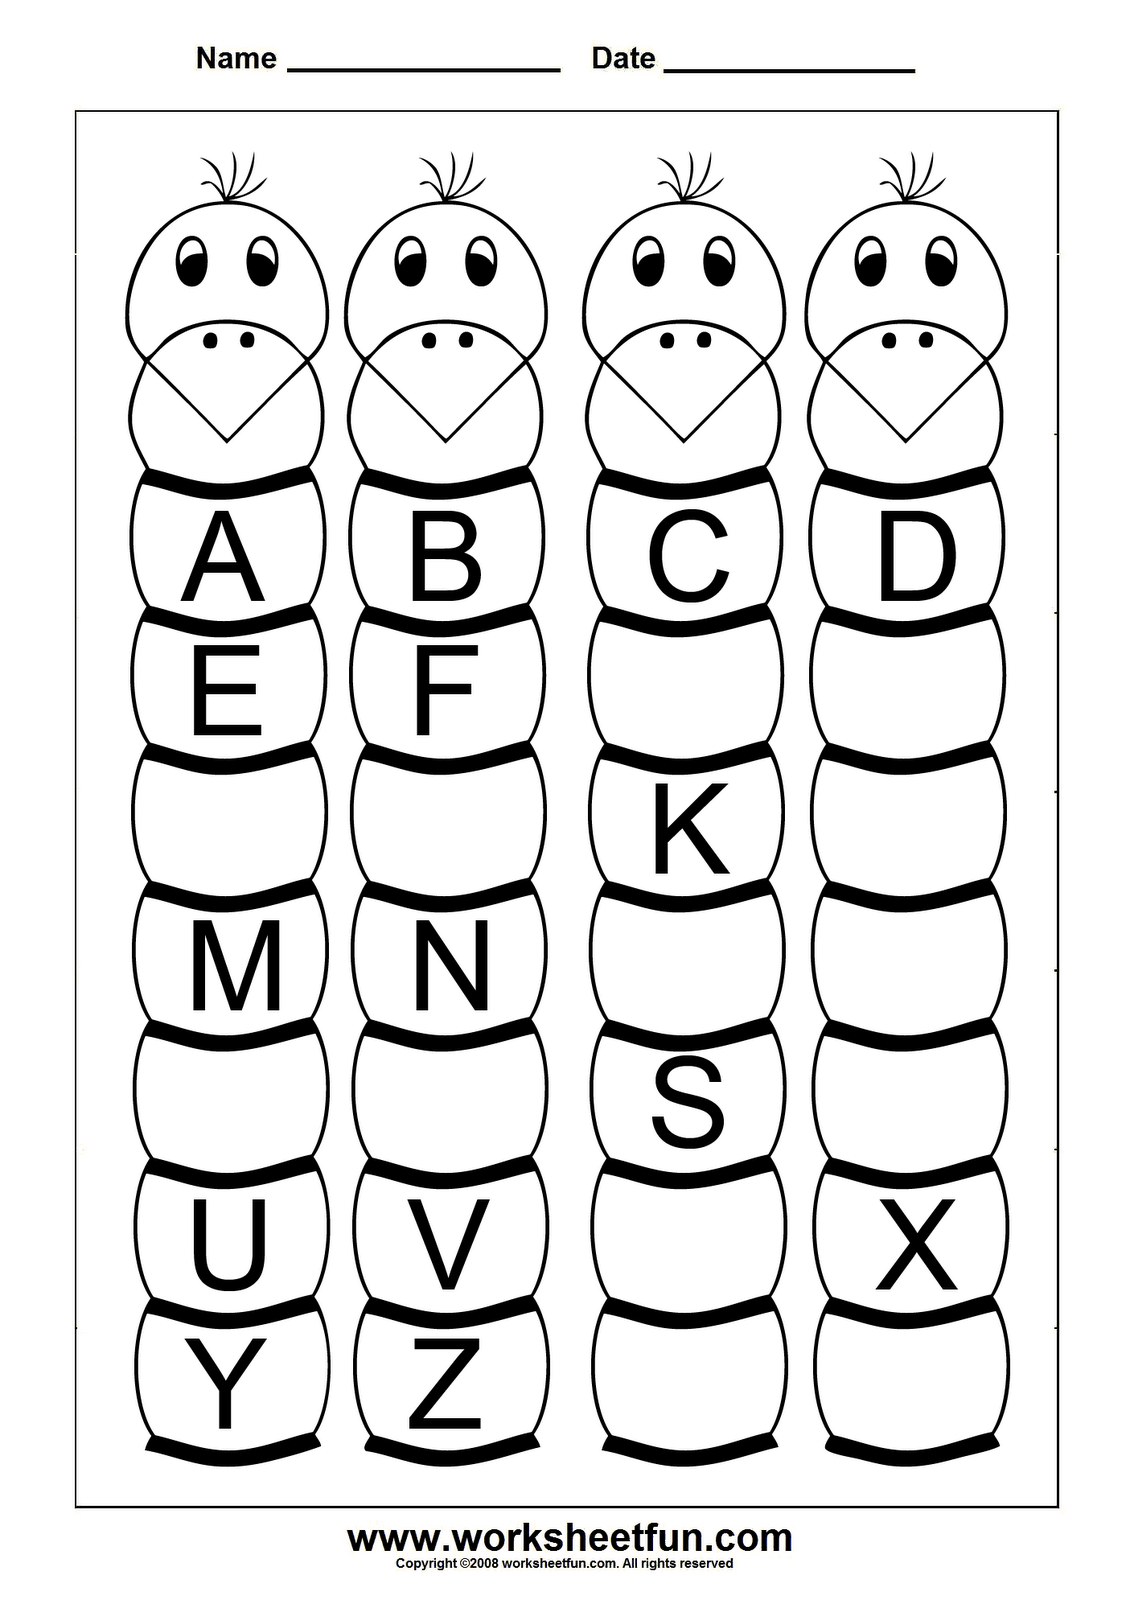 16 Best Images Of Missing Letter Worksheets Small Letters